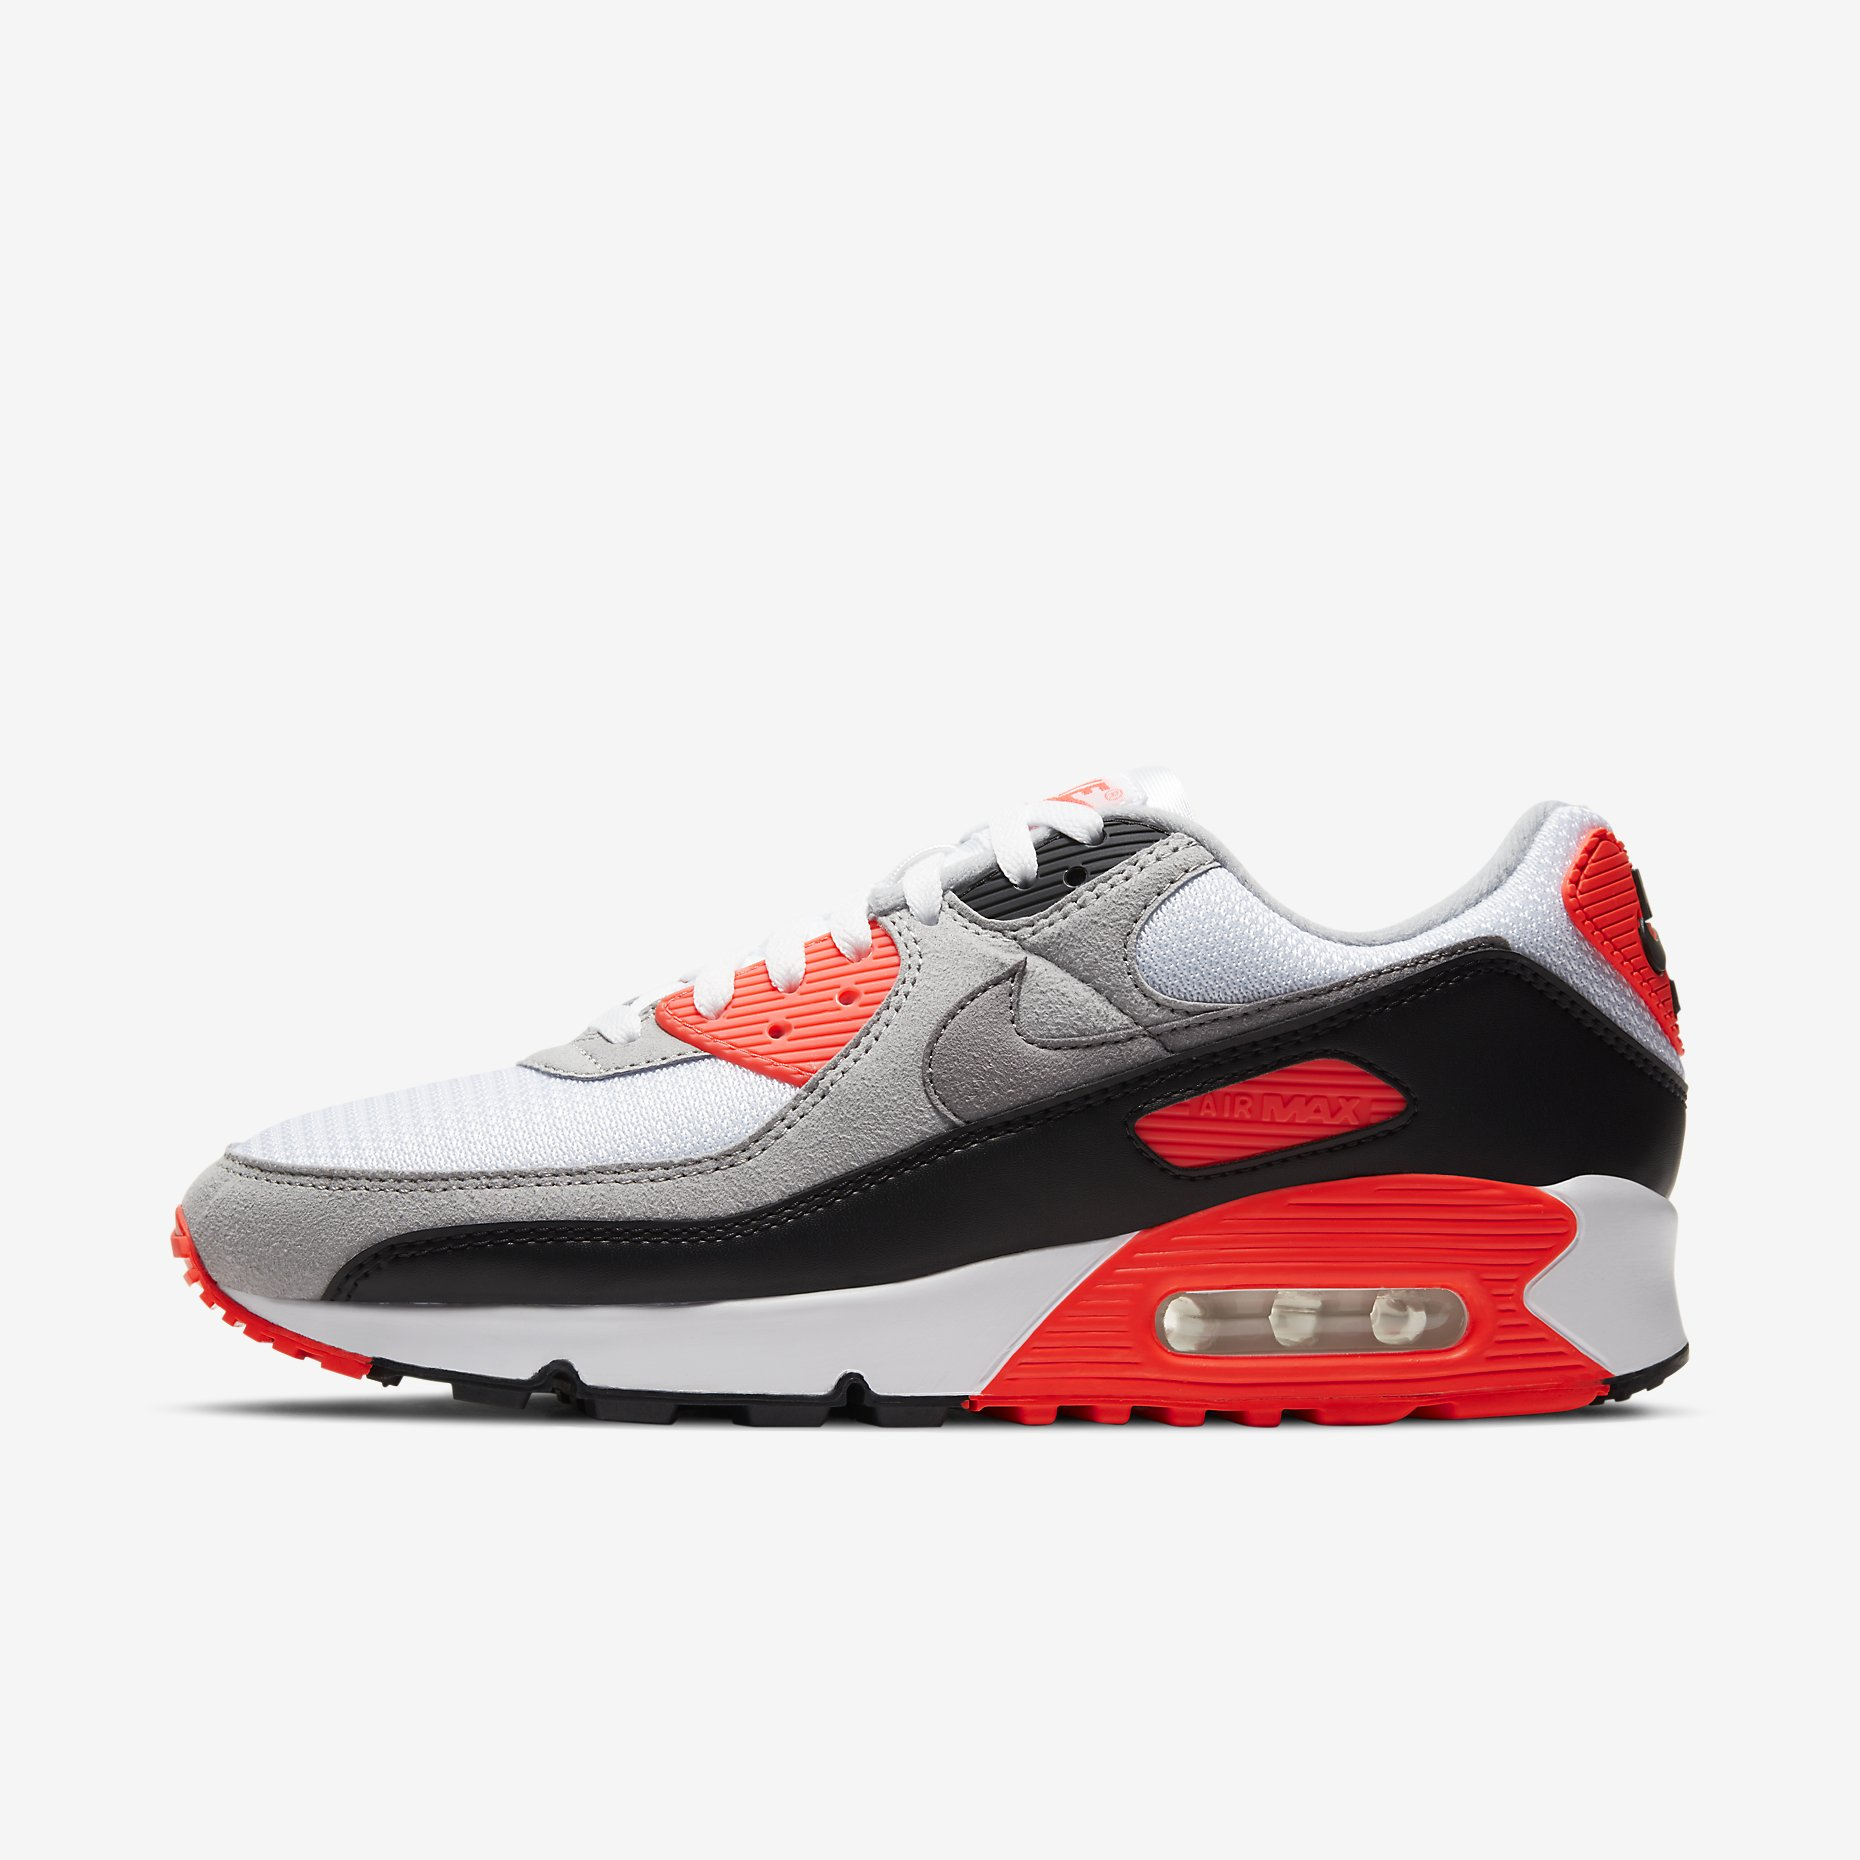 Nike Air Max 3 'Radiant Red'}